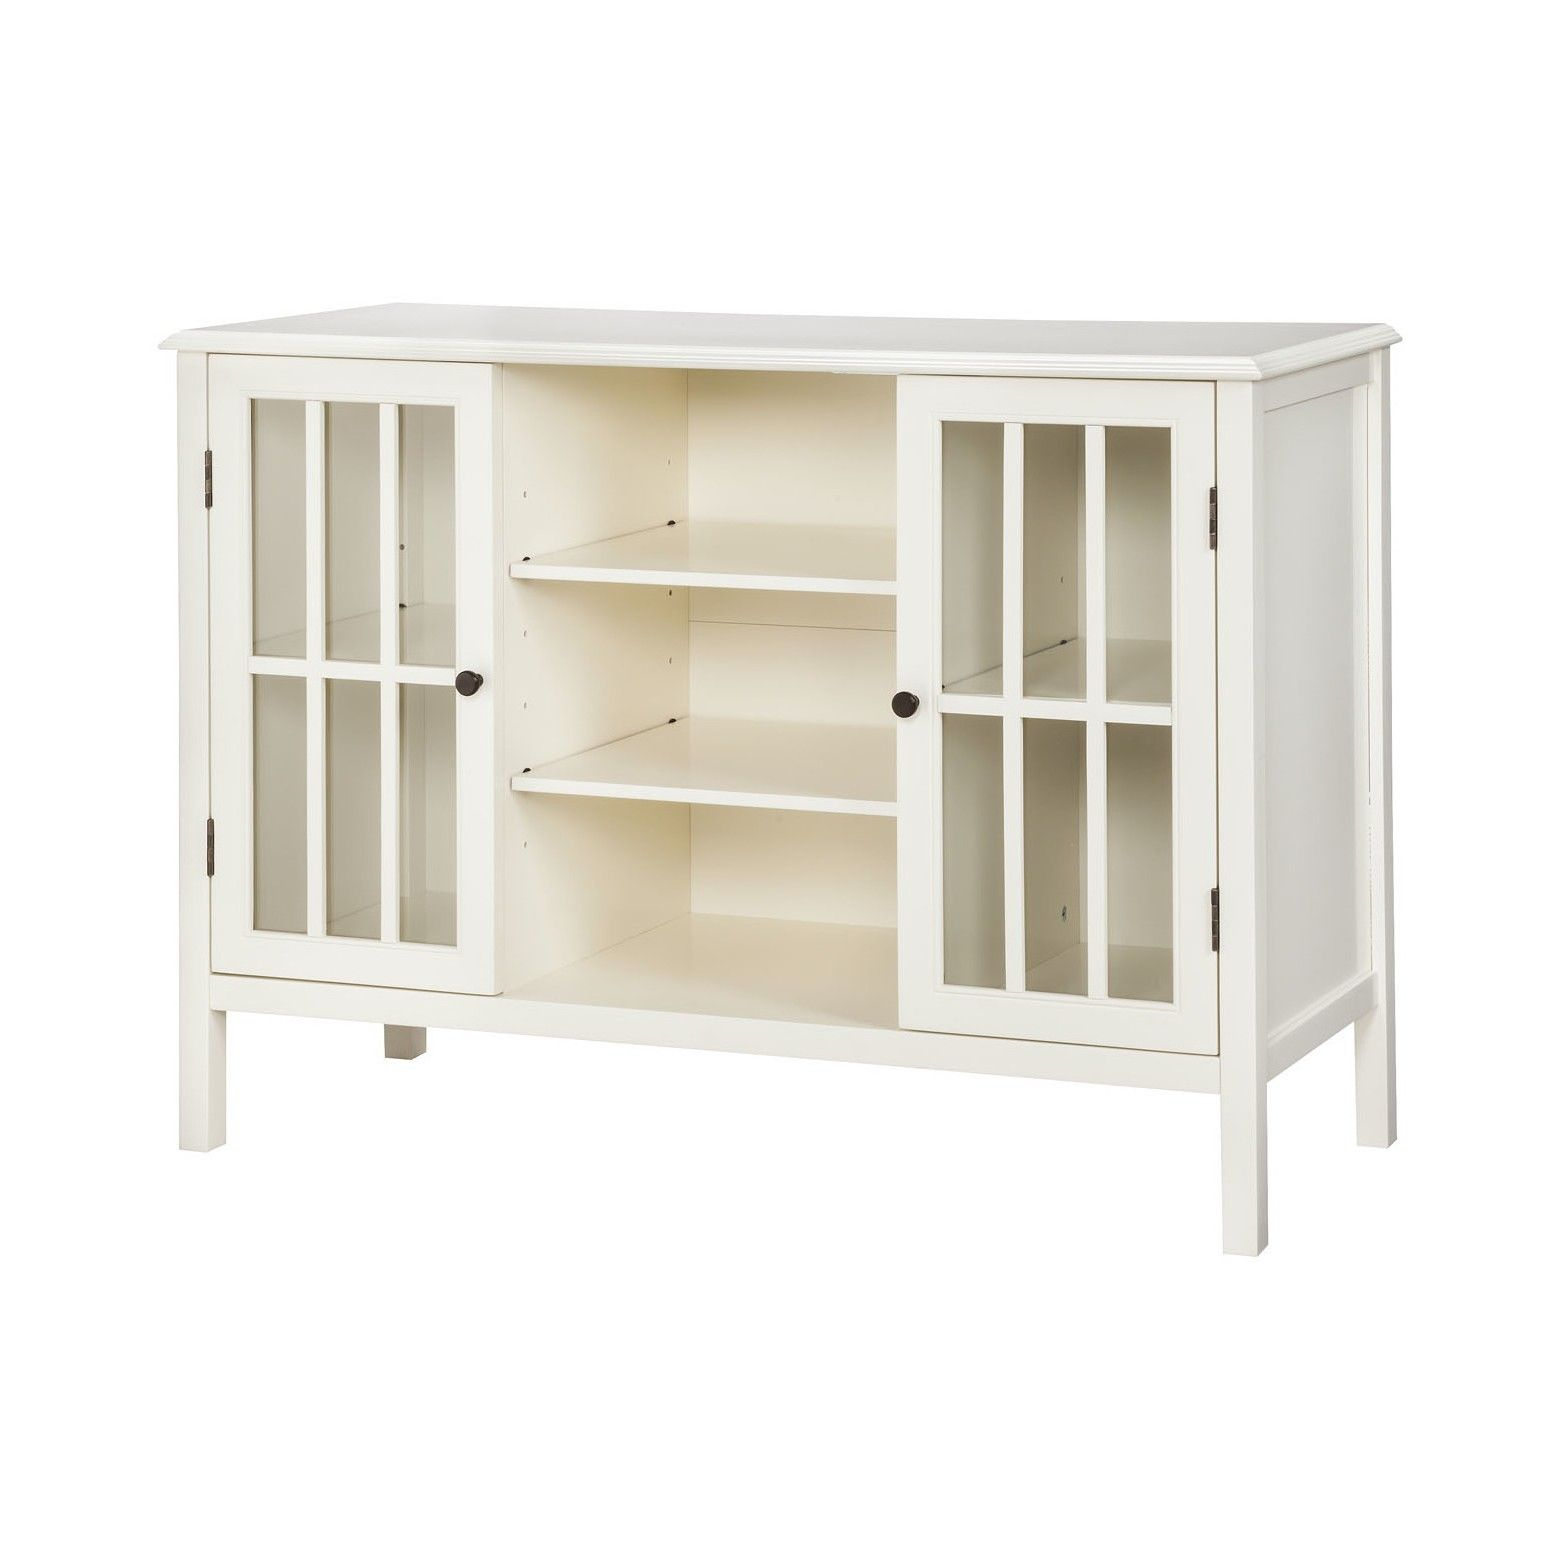 Windham 2 Door Cabinet With Shelves Threshold With Images Storage Cabinet Shelves Shelves Door Storage